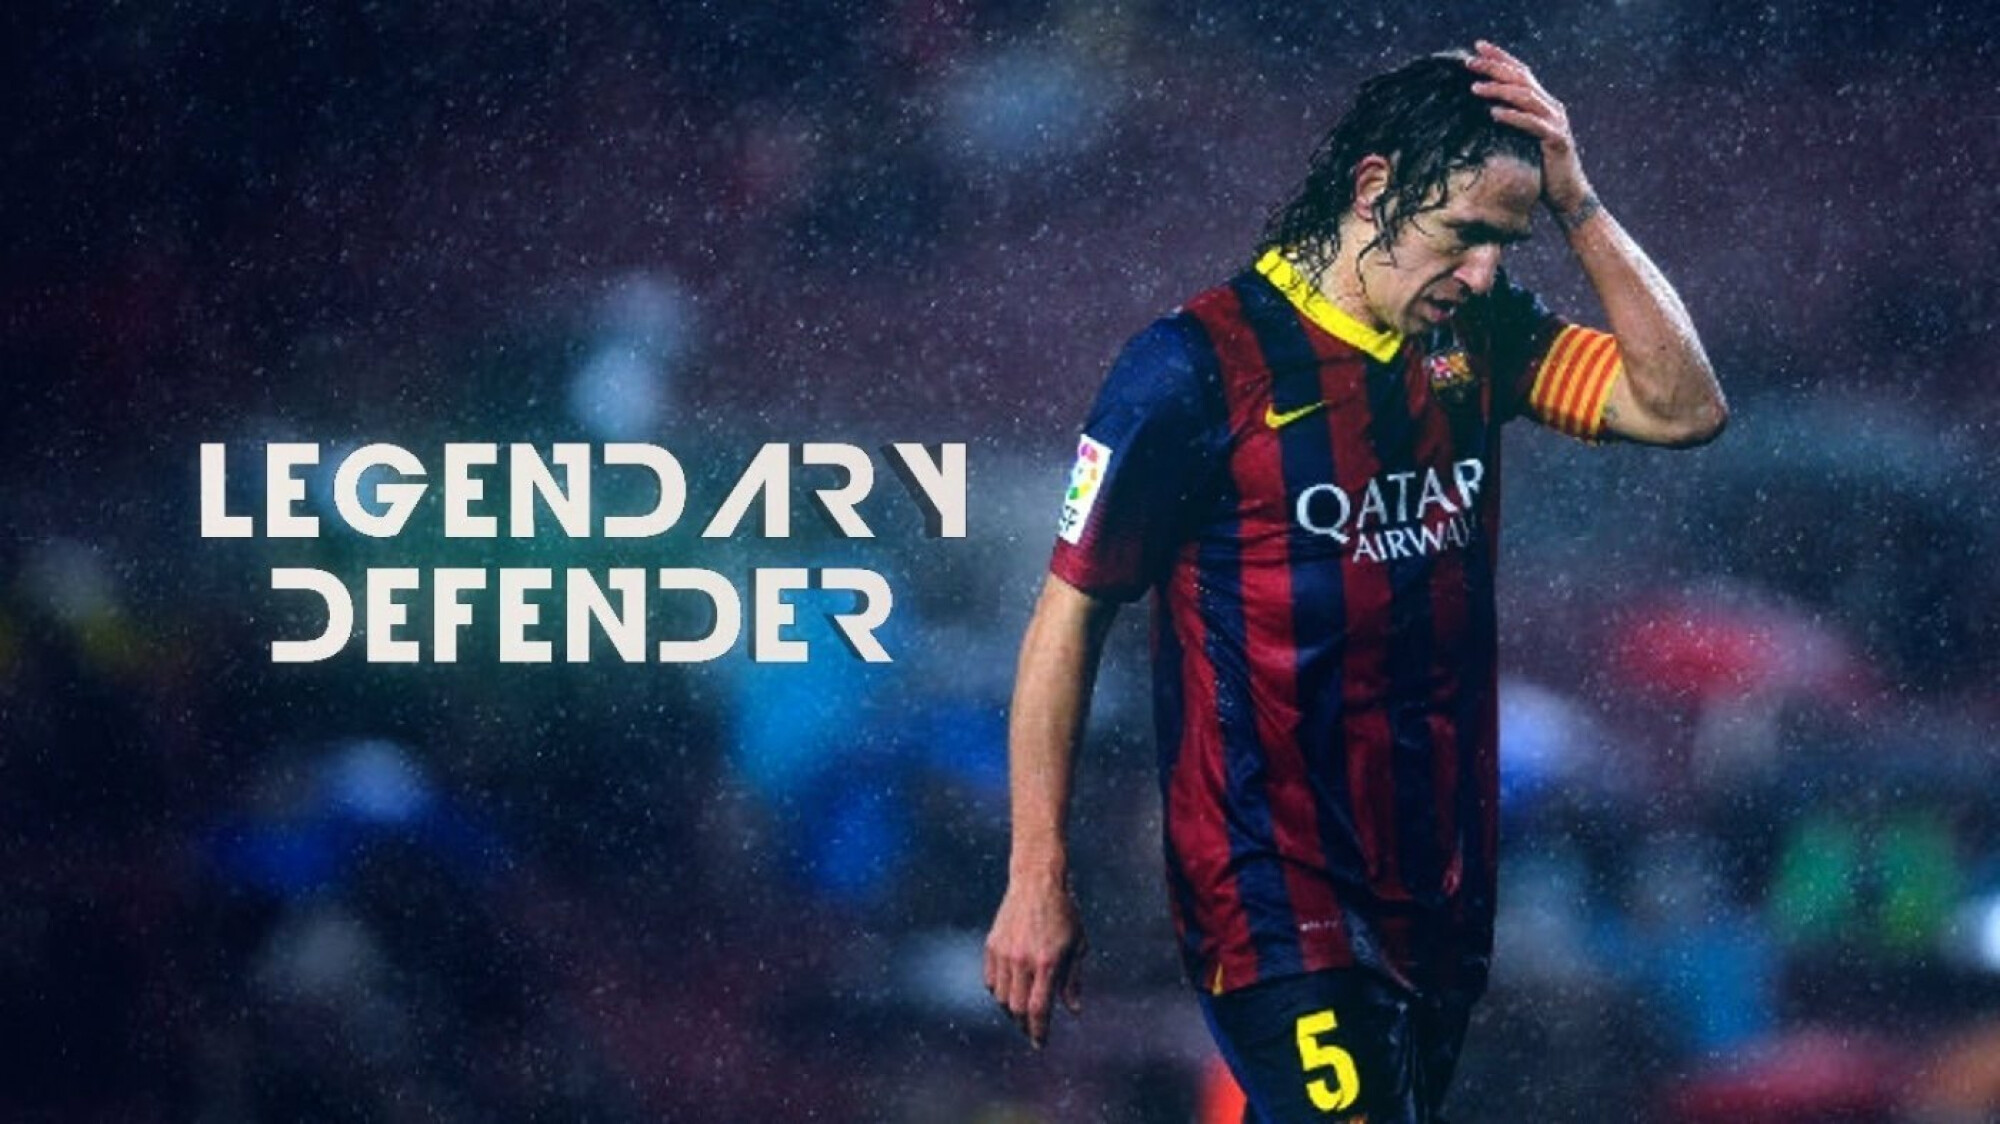 The last proper defender at Barcelona - Carles Puyol